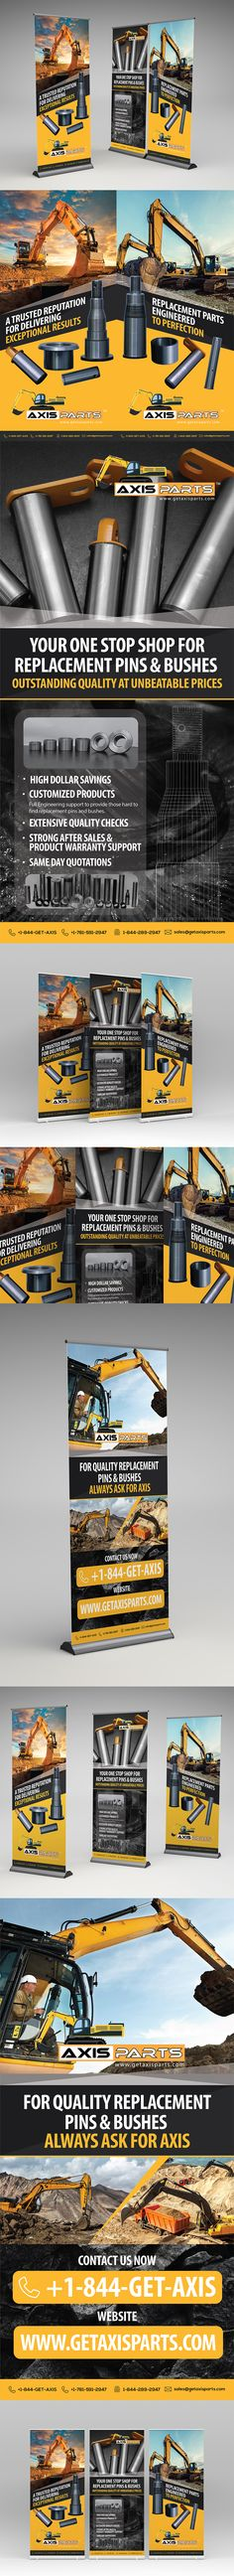 Construction Equipment Banners Sale Item Banners